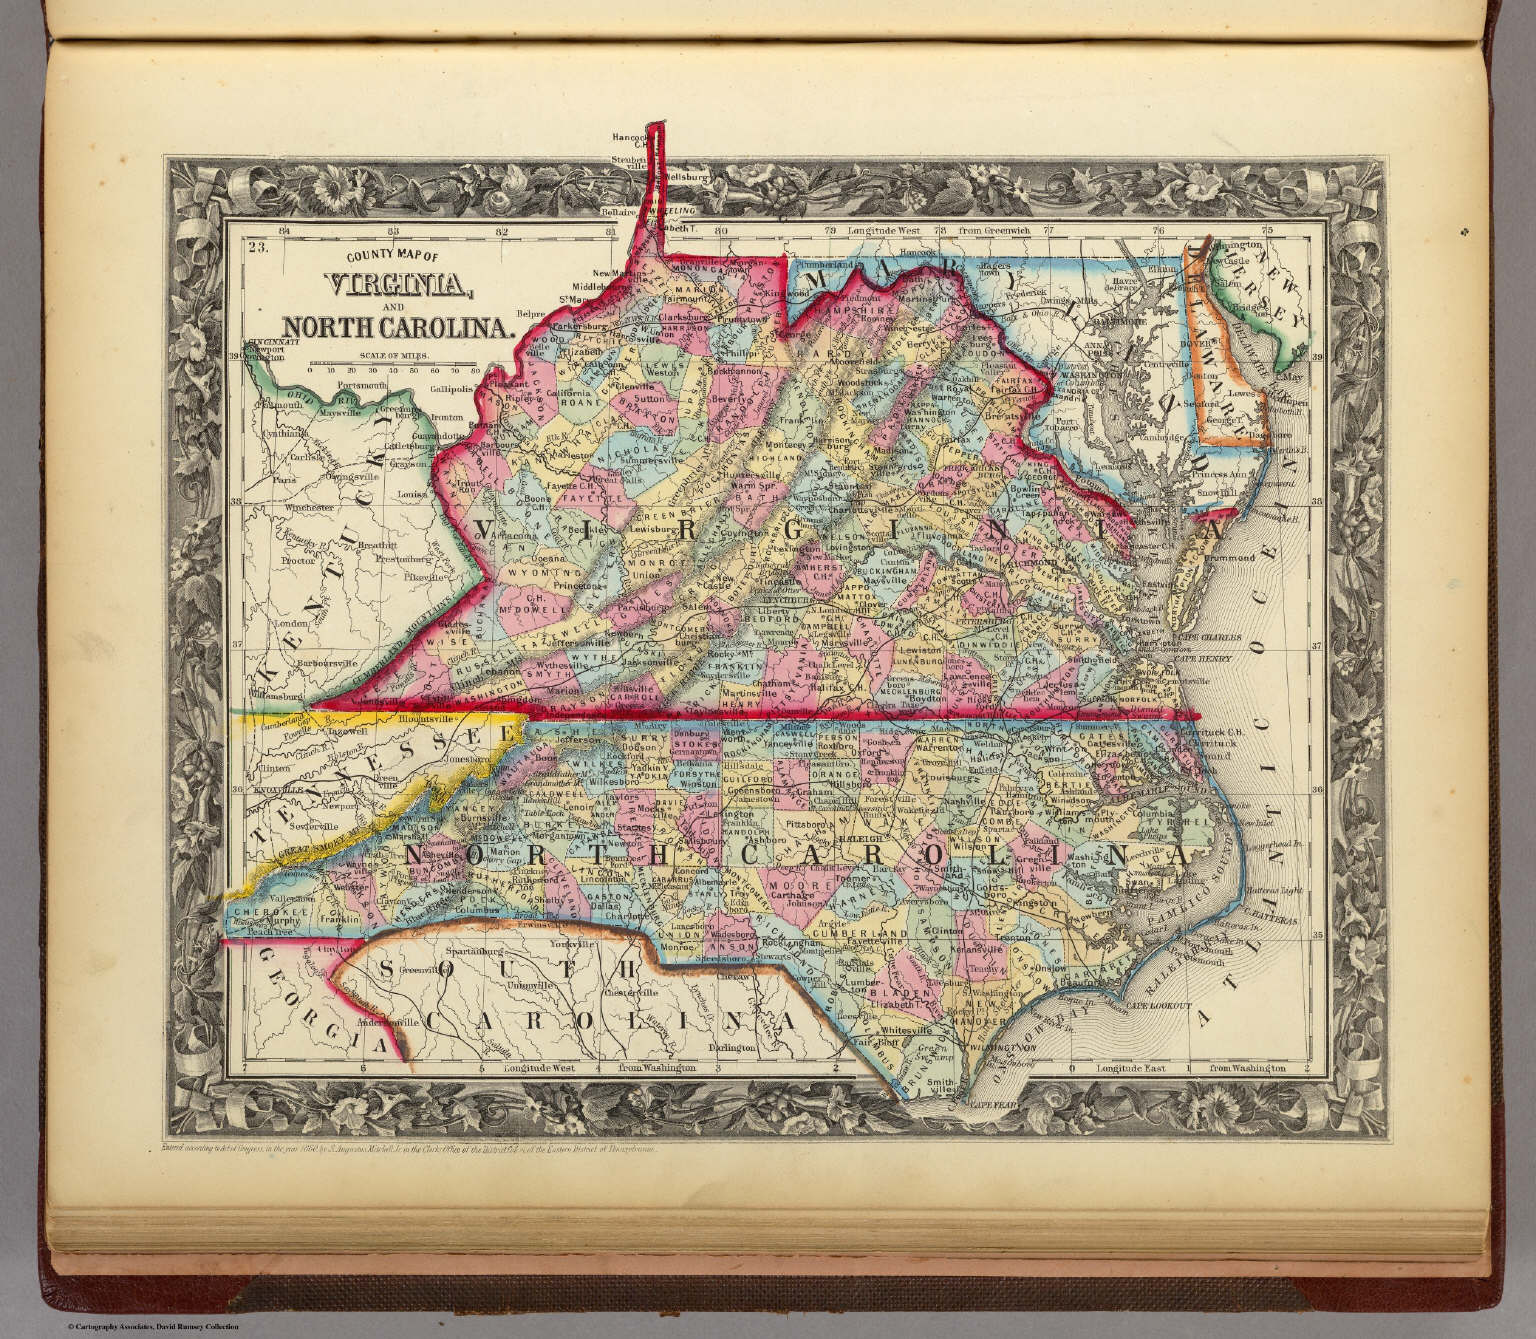 County Map Of Virginia, and North Carolina. - David Rumsey ... on map of indiana showing counties, blank map of mexican states, eastern virginia counties, virginia beach counties, blank outline of west virginia, old map of tennessee counties, blank map of provinces in china, blank map of south carolina regions, interactive map virginia counties, blank map of georgia rivers, sc counties, blank outline map of georgia, maryland county map of counties, kansas city counties, va state map with counties, virginia state map showing counties, blank map southeast united states, state of indiana counties, blank va map, blank county map,